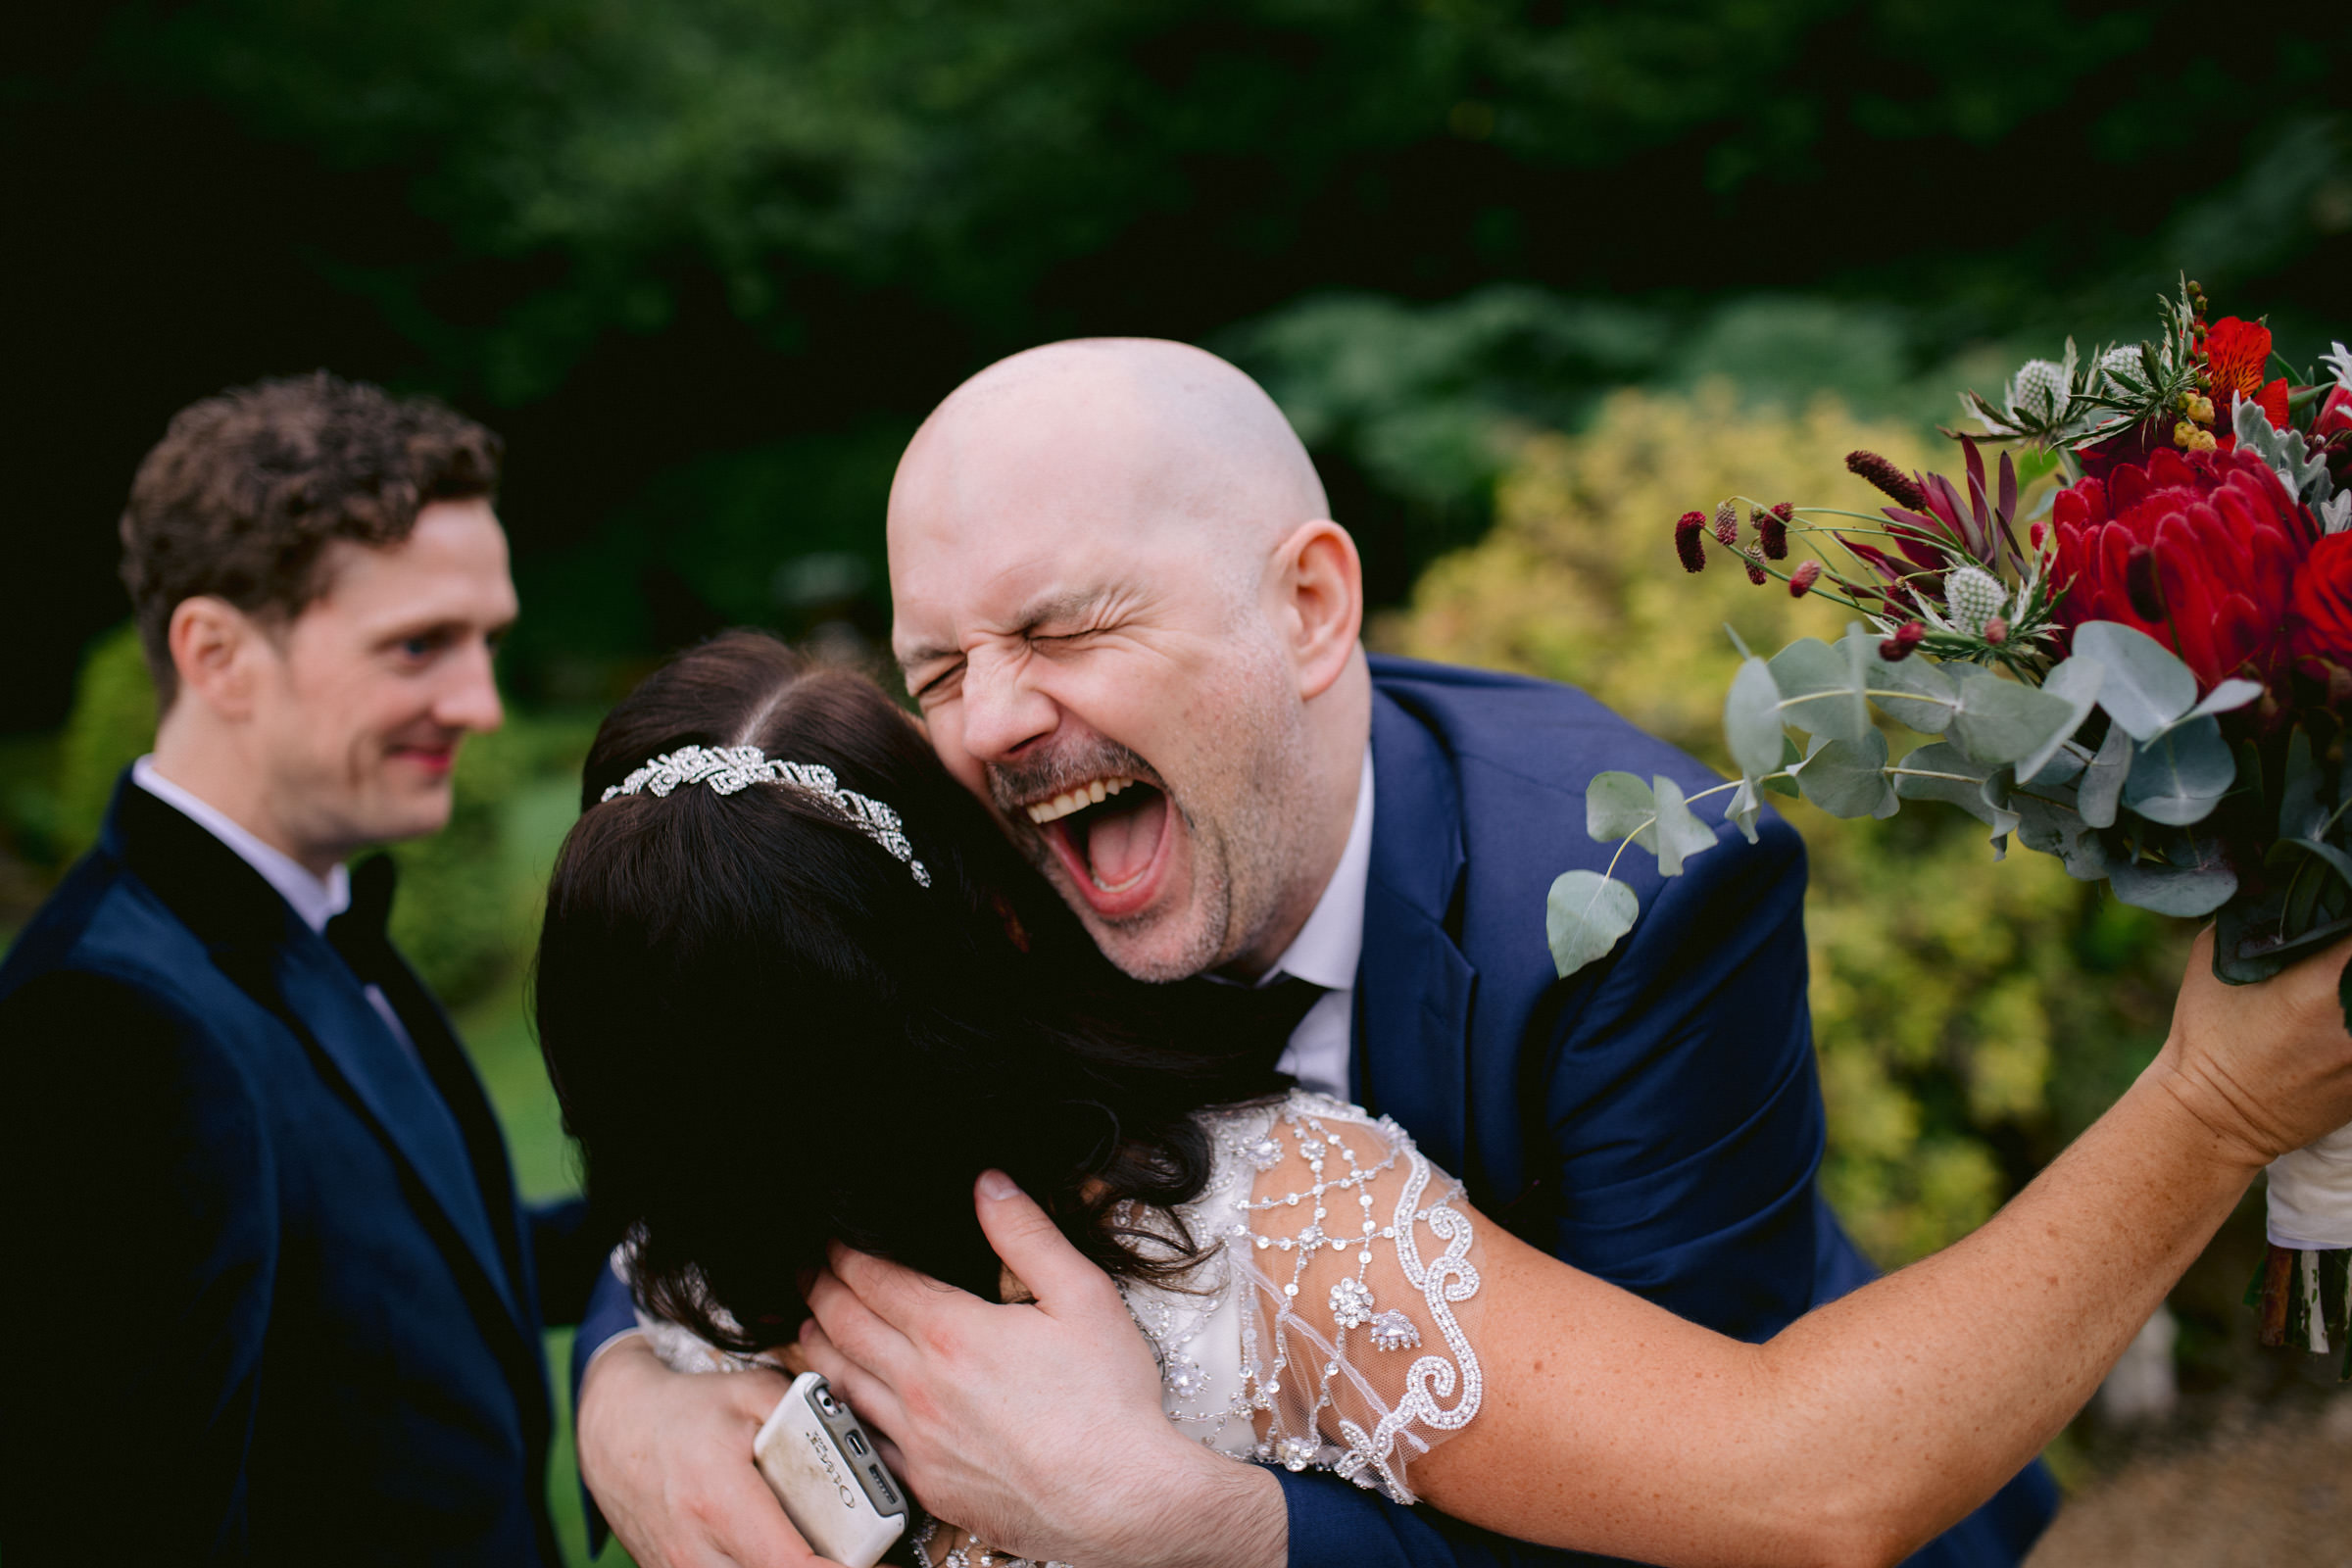 Huge hug for the bride - photo by The Portrait Rooms